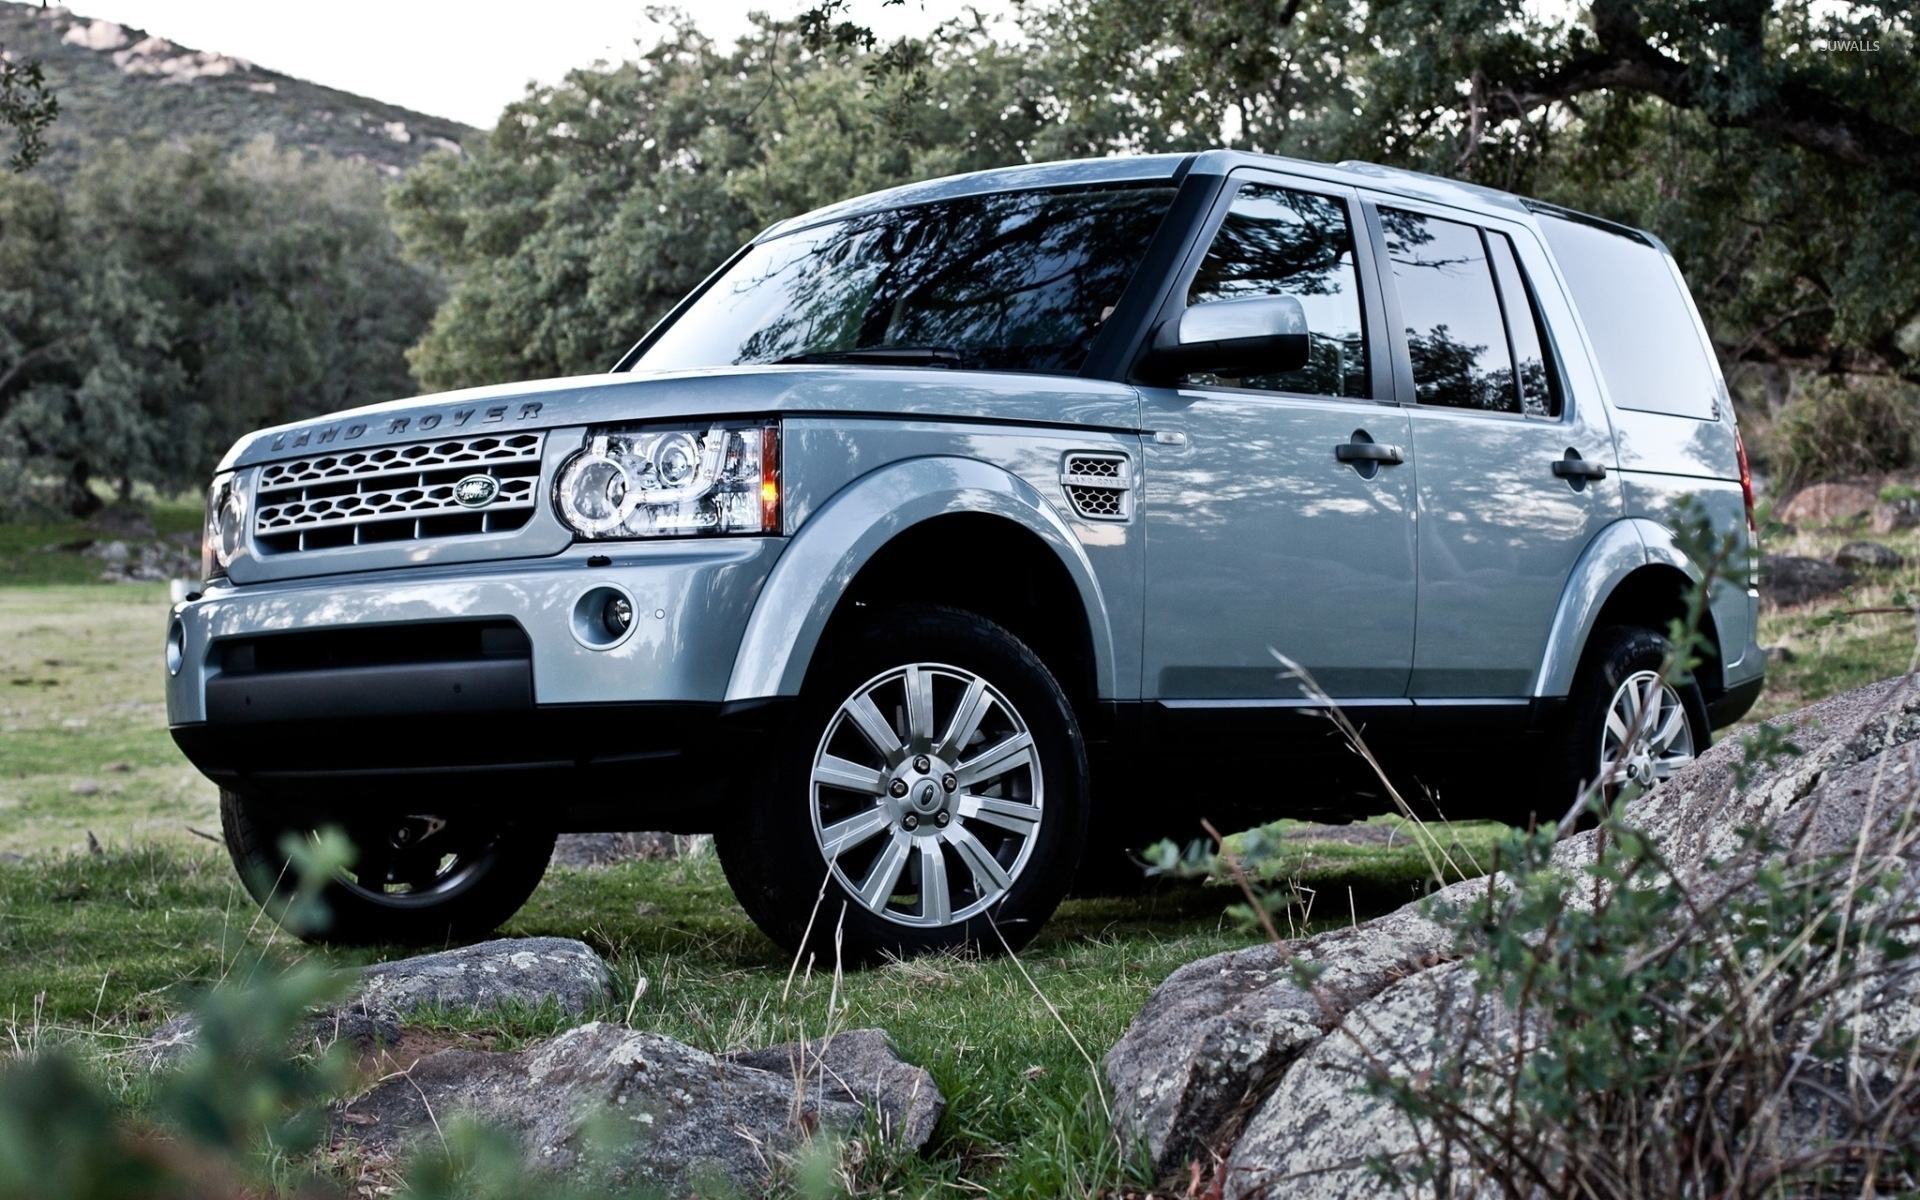 Land Rover Discovery [2] wallpaper Car wallpapers